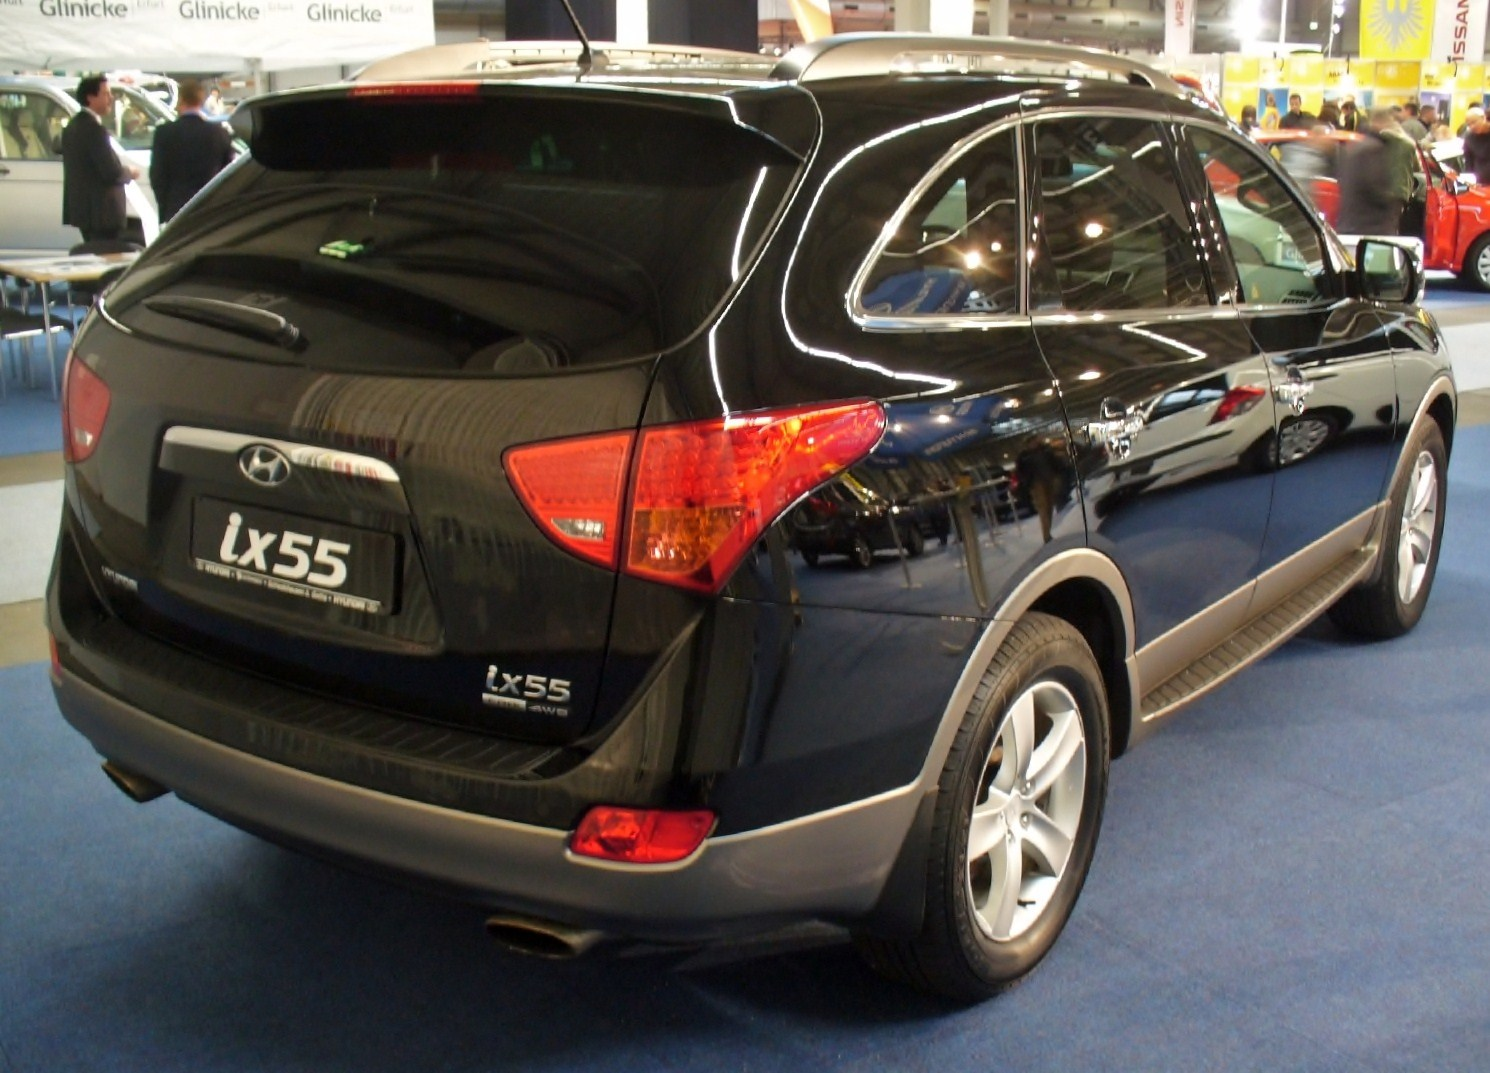 2015 hyundai ix55 pictures information and specs auto. Black Bedroom Furniture Sets. Home Design Ideas